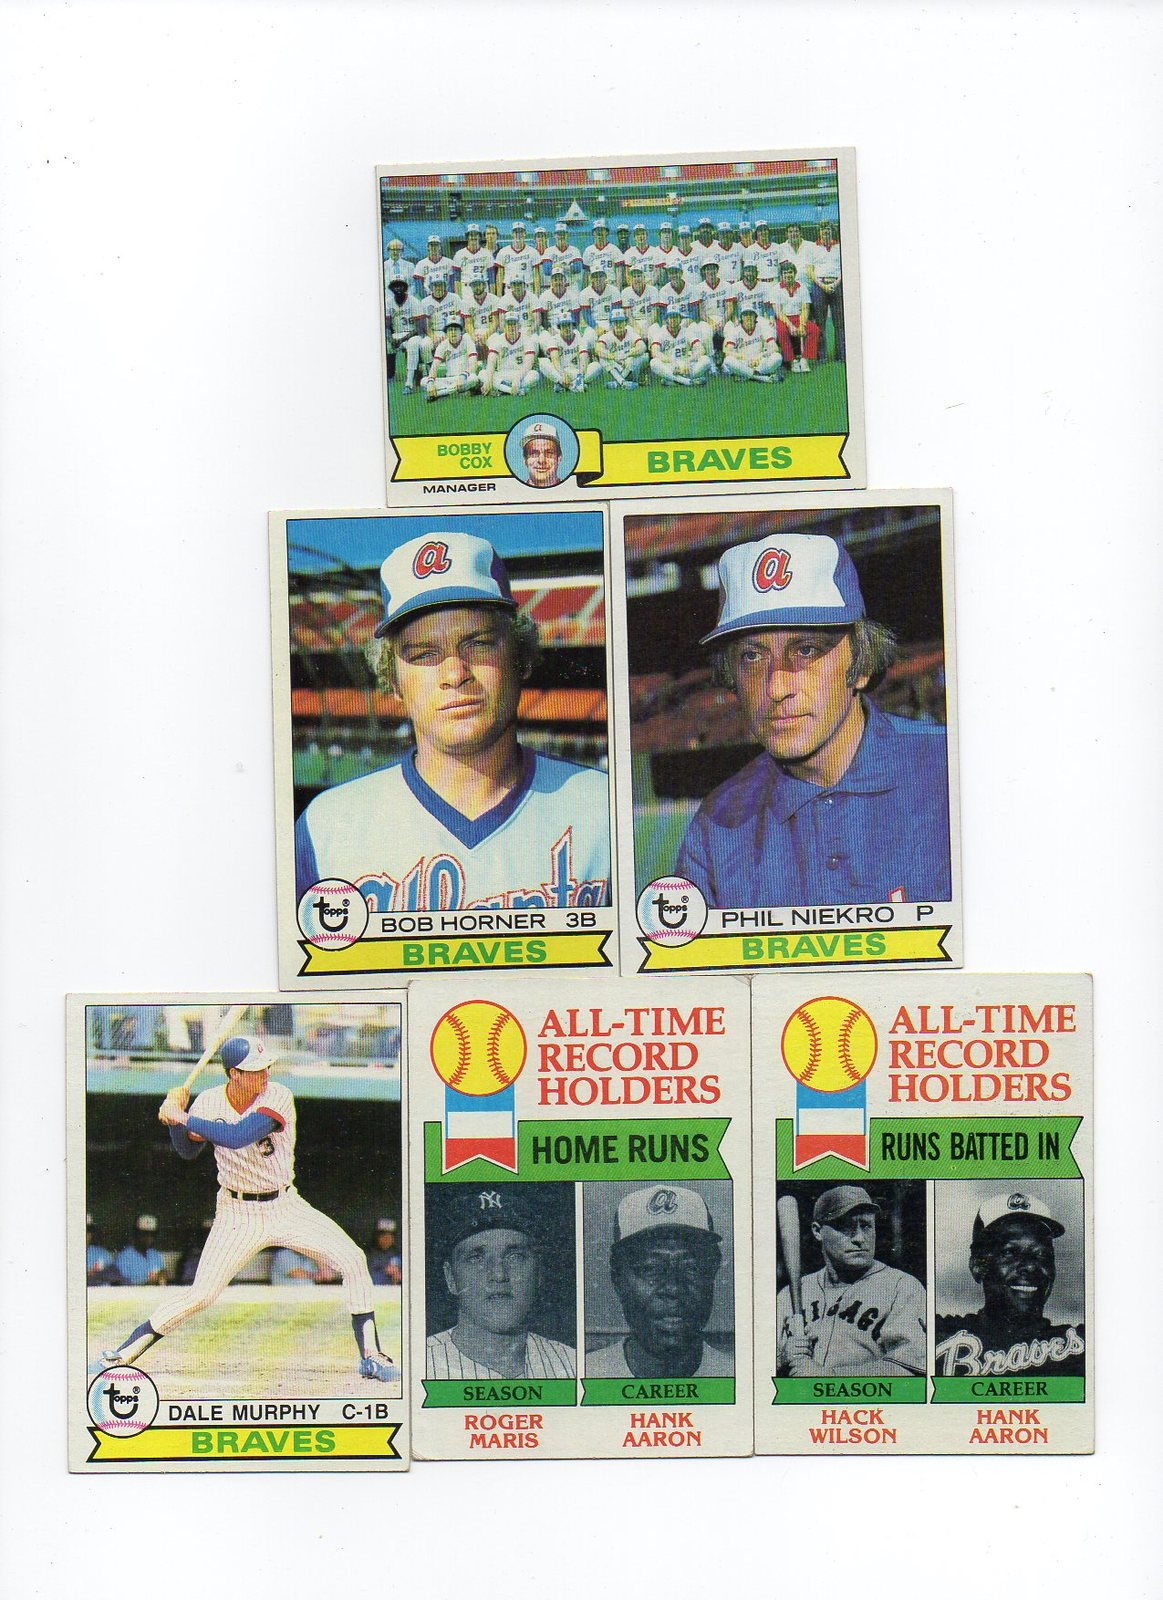 1979 Topps Atlanta Braves Team Set With Phil Niekro, Dale Murphy, and Aaron